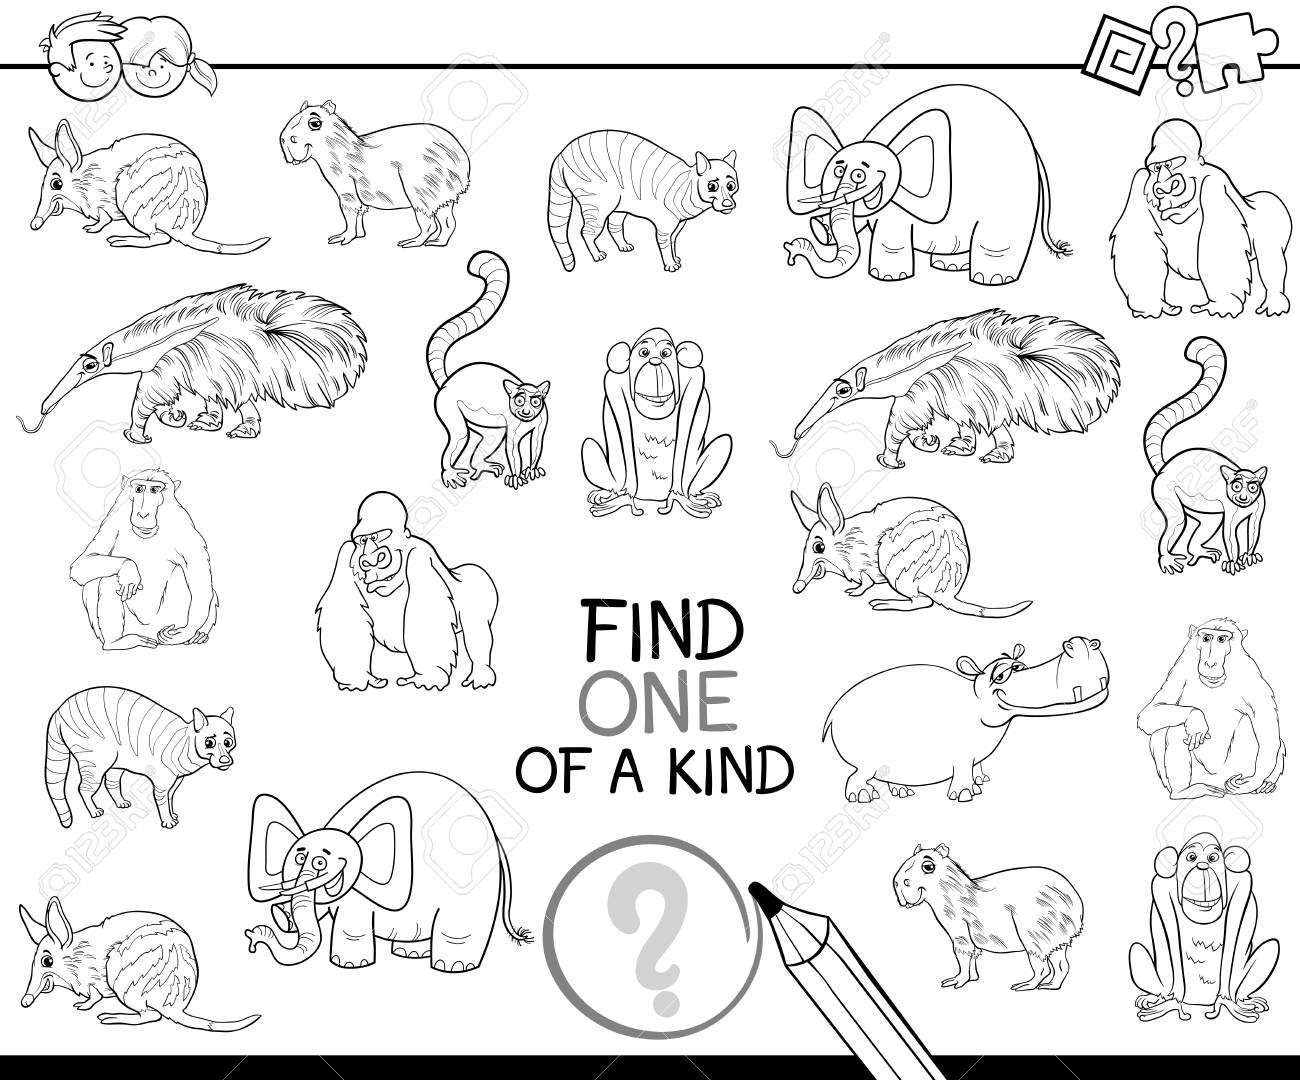 black and white cartoon illustration of find one of a kind educational activity game for children wi